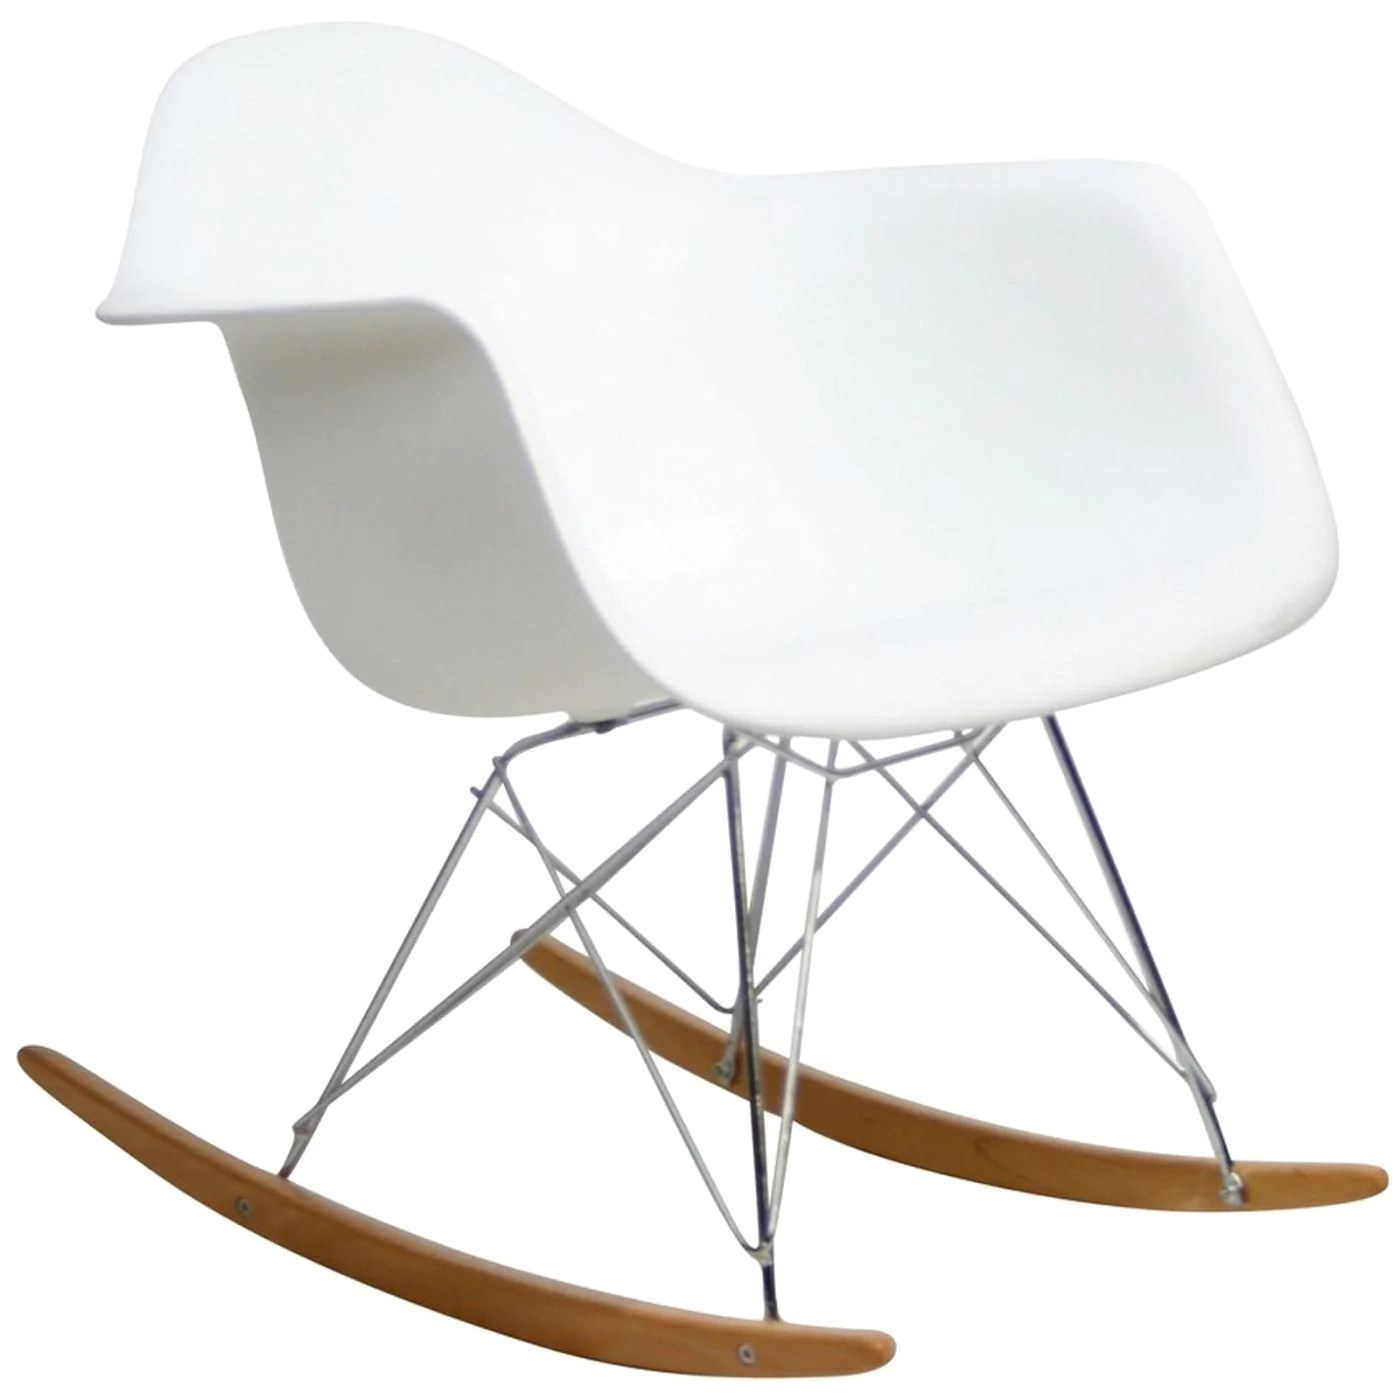 Plastic Lounge Chair Modway Rocking Chairs On Sale Eei 147 Whi Rocker Pp Plastic Lounge Chair Only Only 129 00 At Contemporary Furniture Warehouse